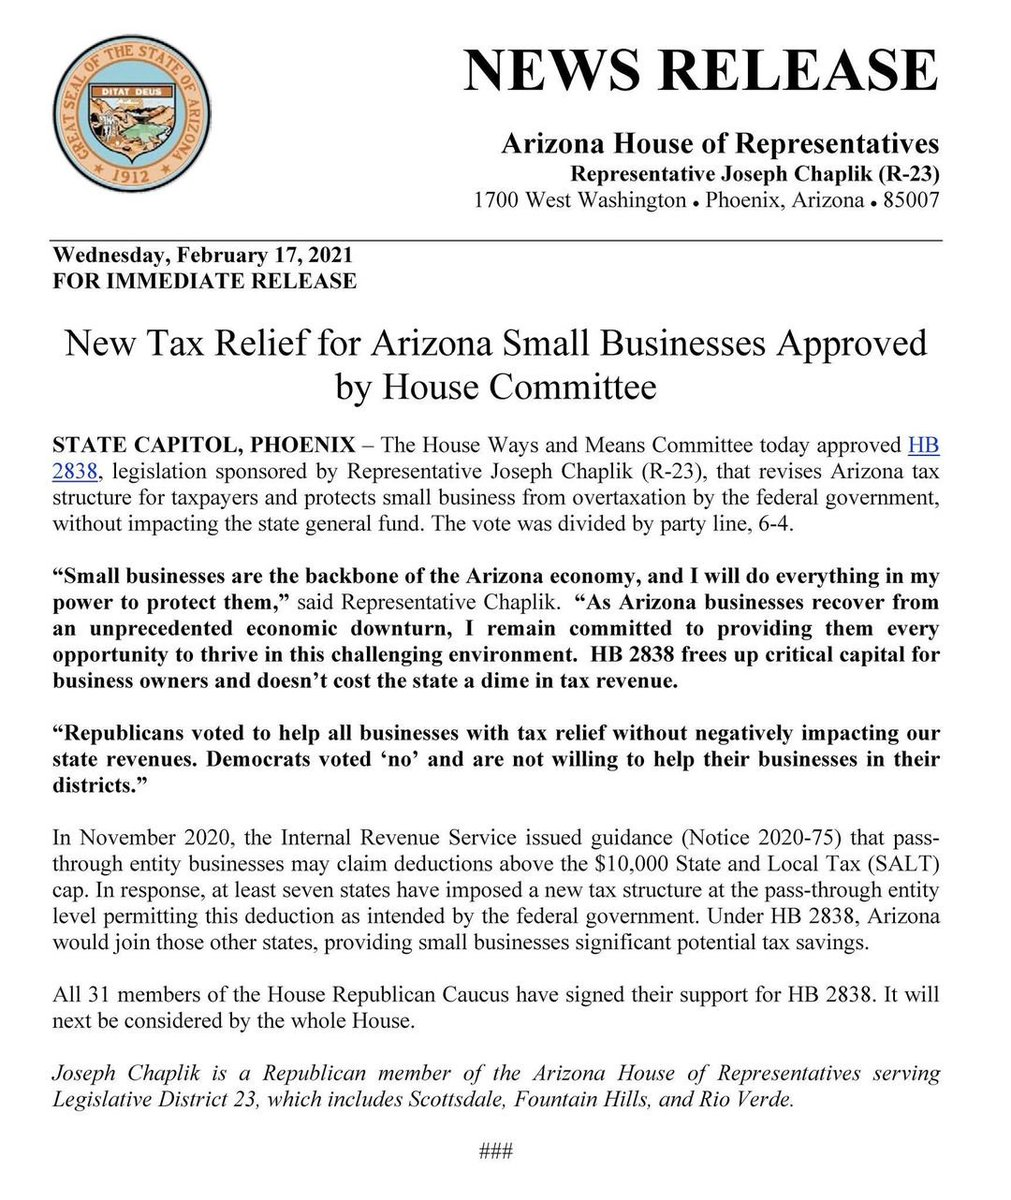 House Bill 2838 is going to the floor this upcoming week to give tax relief to Arizona businesses.   All Democrats voted against it in committee.  Republican are fighting for more tax relief to keep Arizona a pro-business state. #AZLeg #HB2838